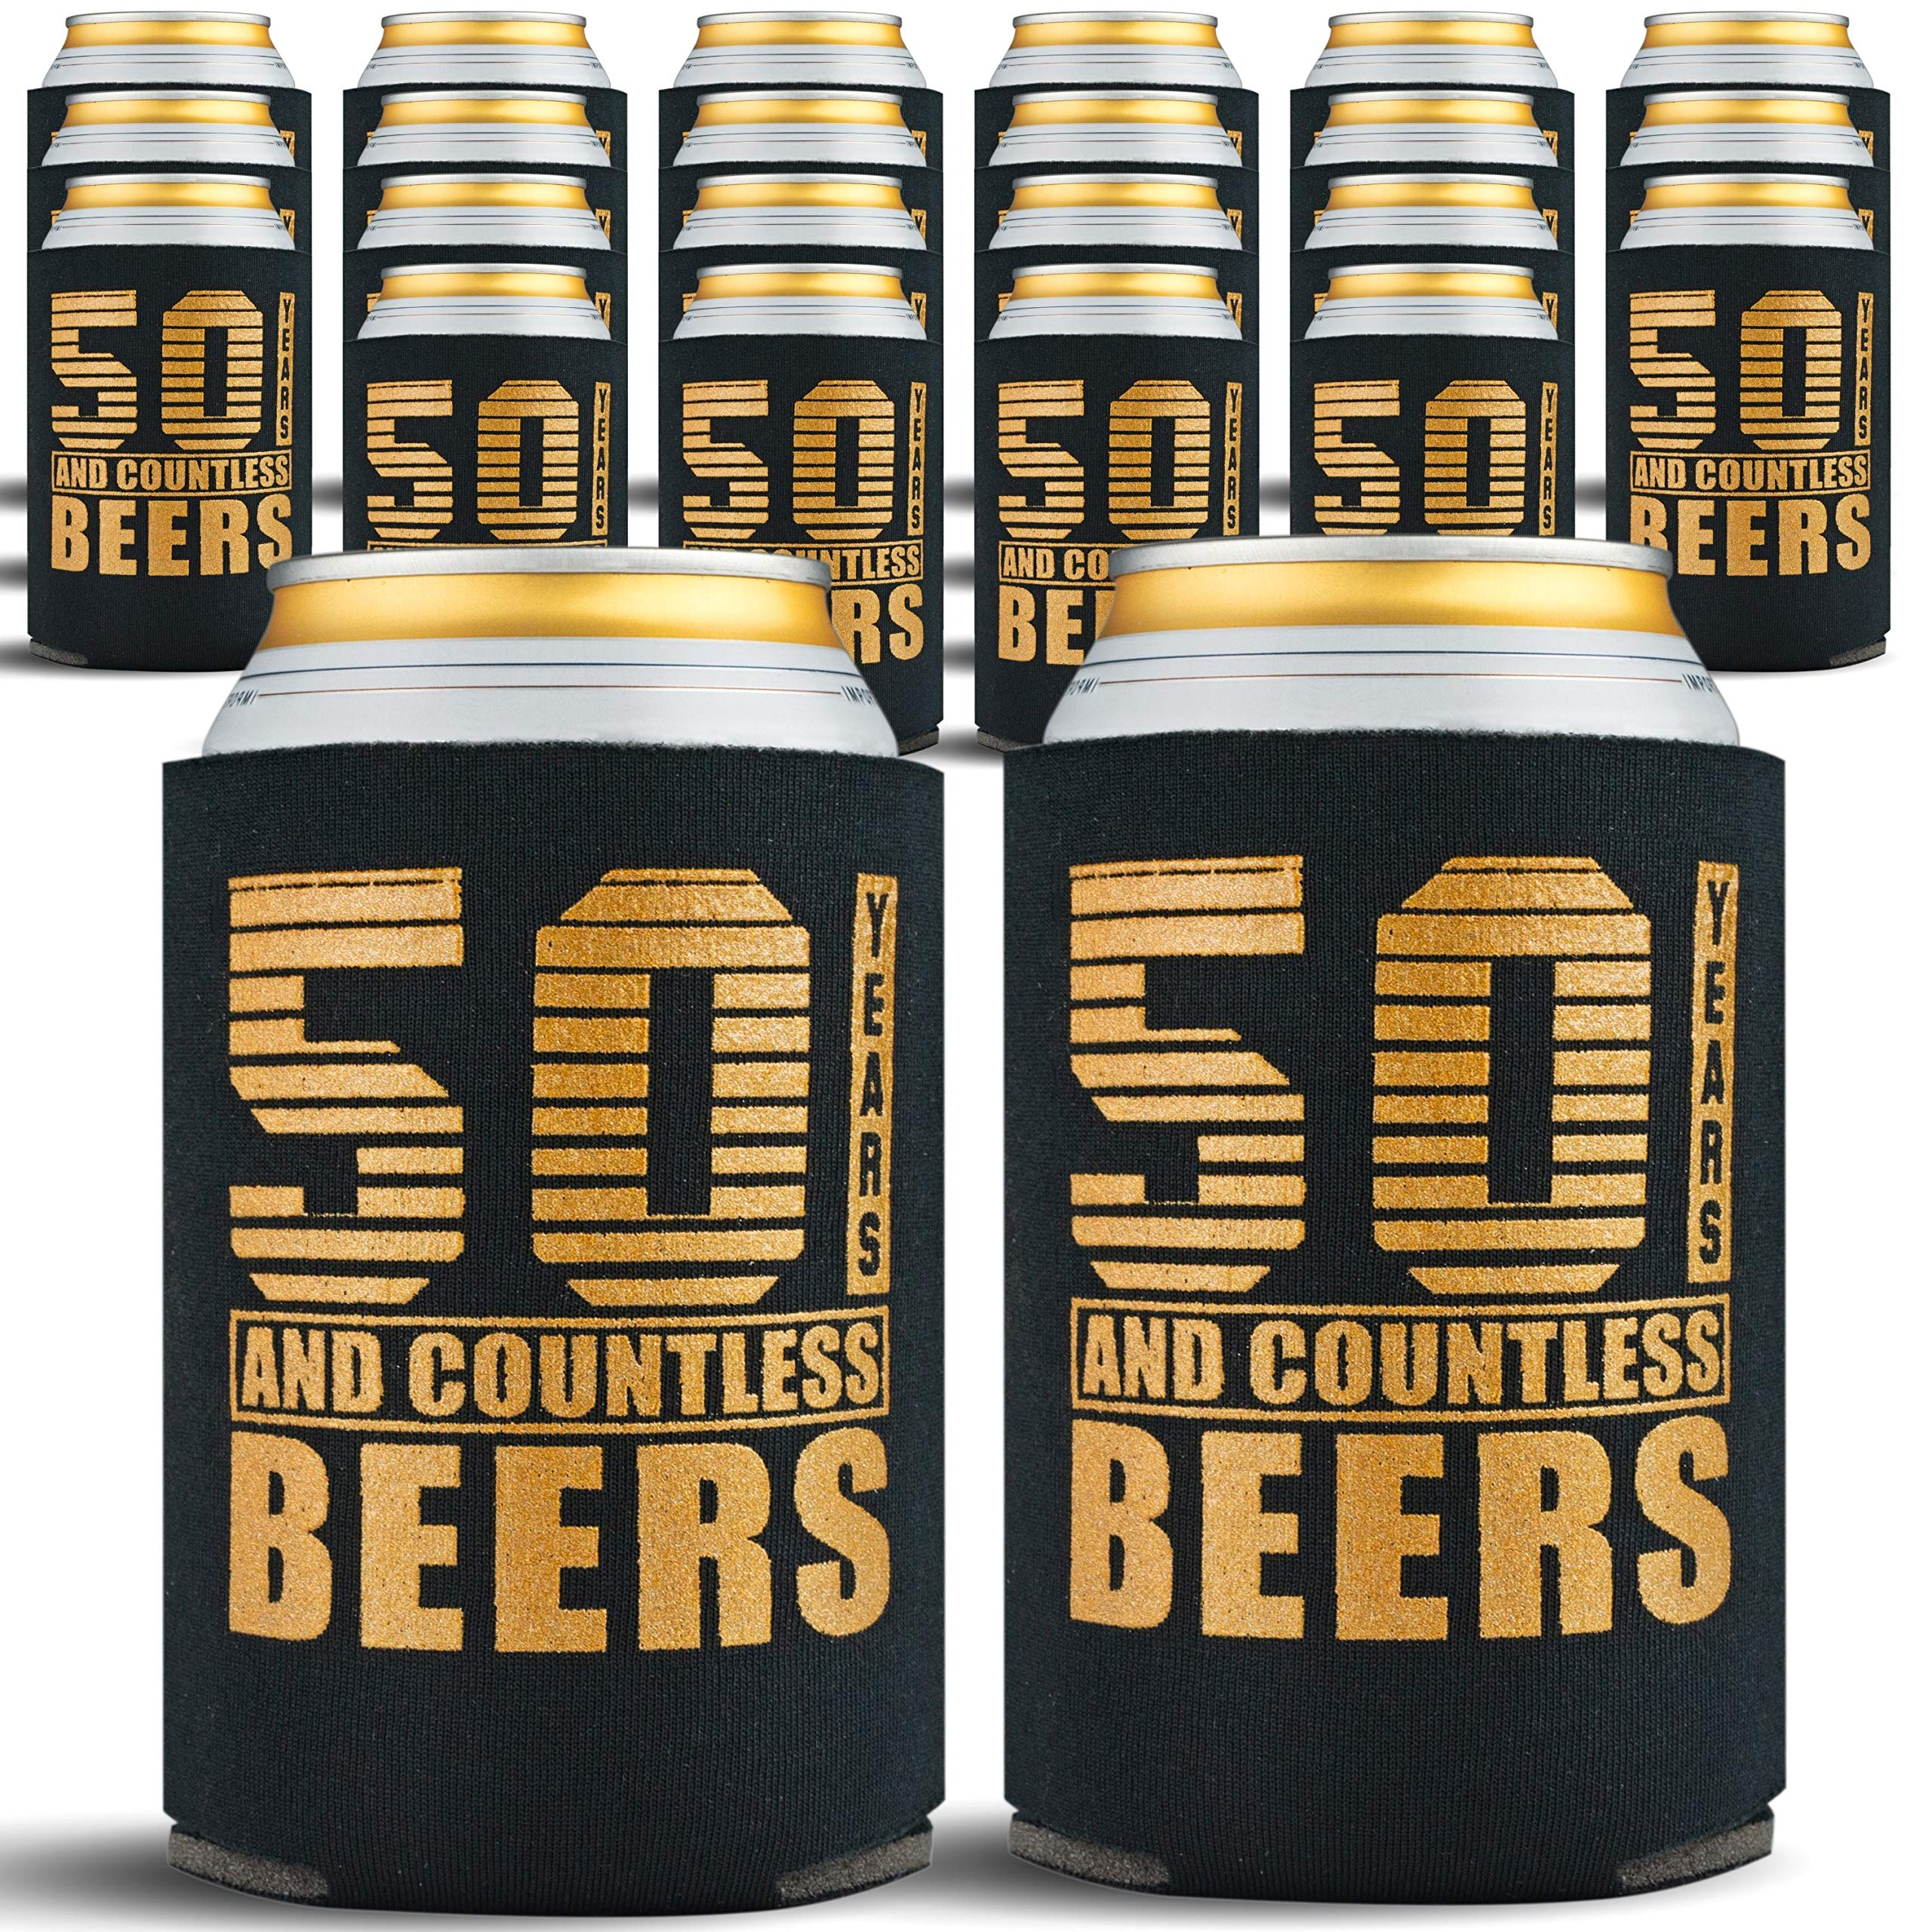 50th Birthday Gifts Men or for Women - 24-Pack Can Coolers - 50th Birthday Gift Ideas Beer Sleeve - 24 Beer Cooler Insulated Sleeves - 50th Birthday Decorations for Men, Black with Gold Lettering by Gold Coastal